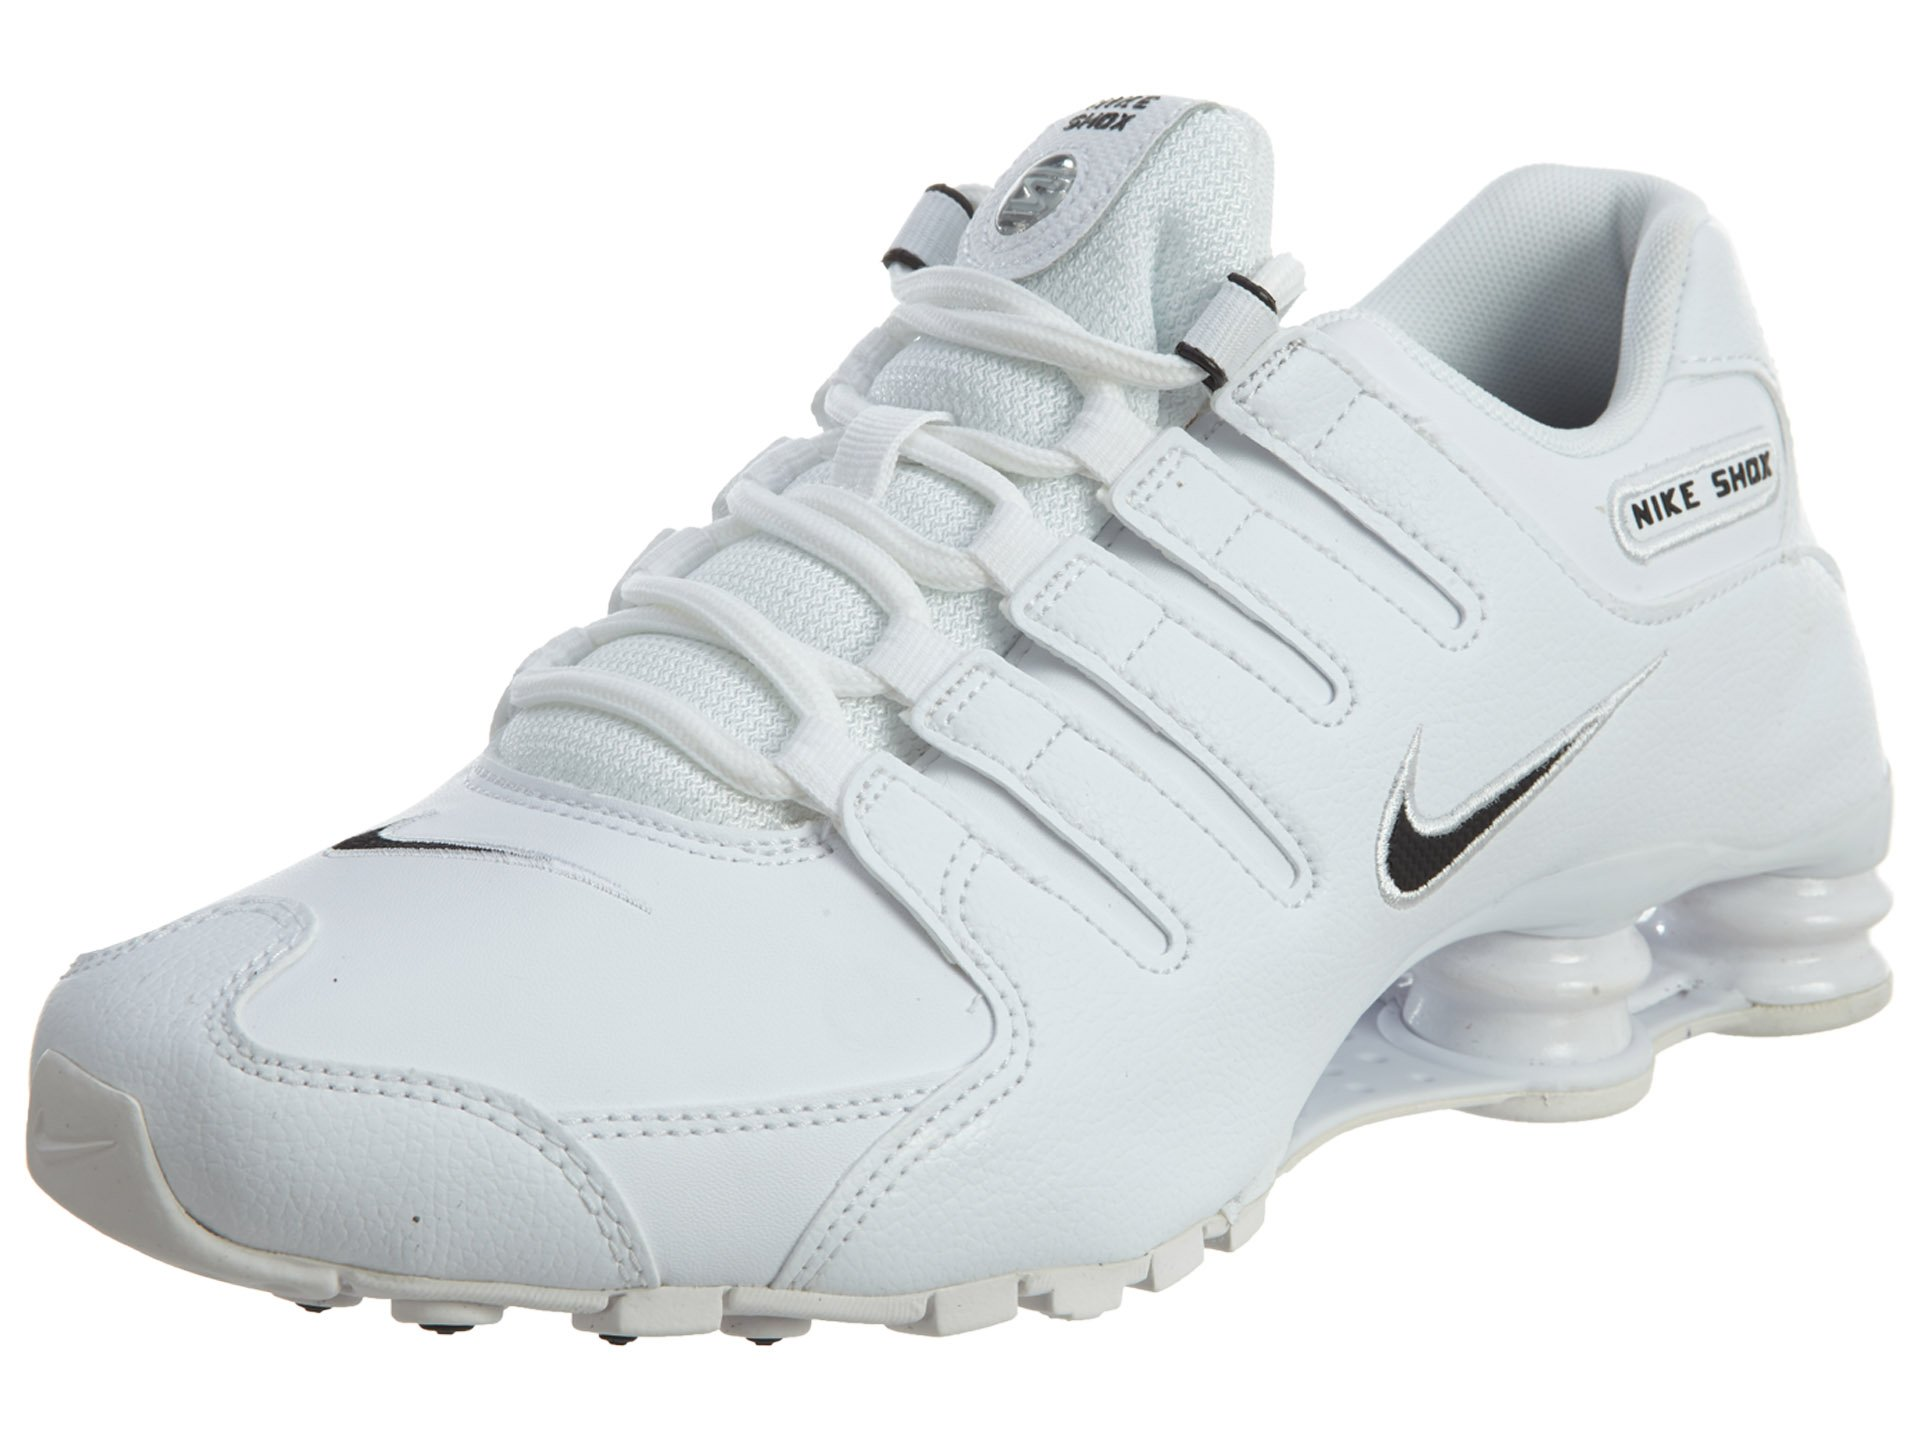 Galleon - Nike Men s Shox NZ Running Shoe White   Black - White - 9 D(M) US 741acc17f48f